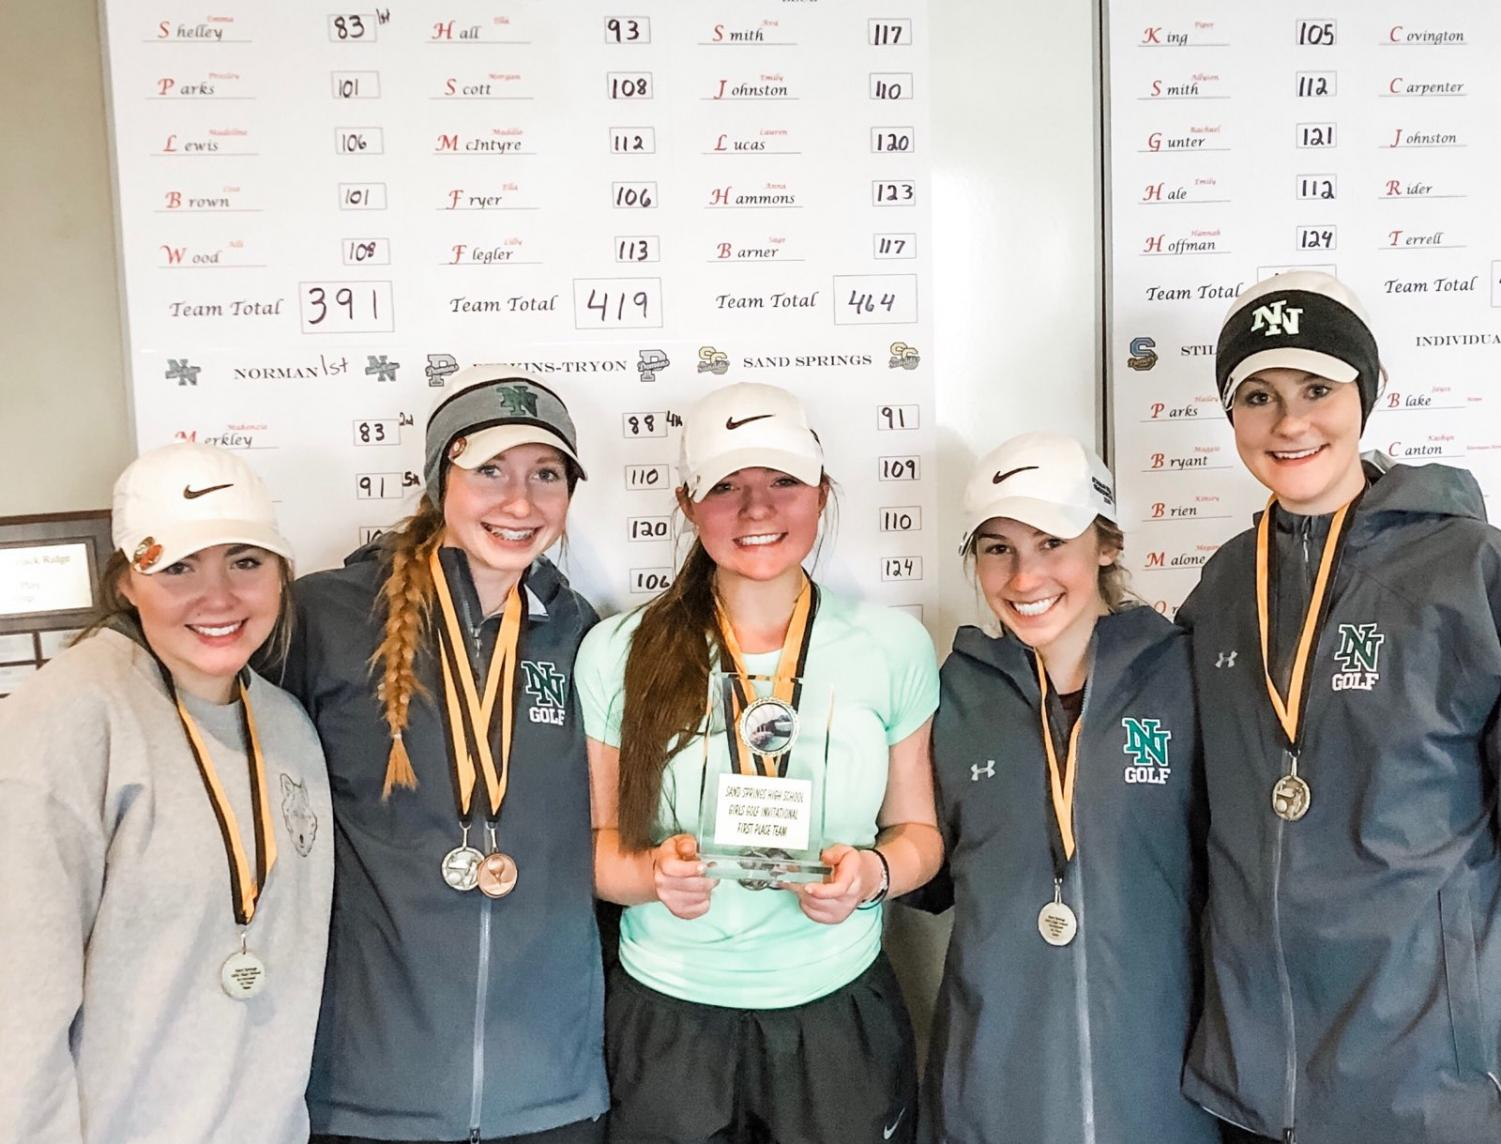 The girls with their medals at the Sand Springs tournament.